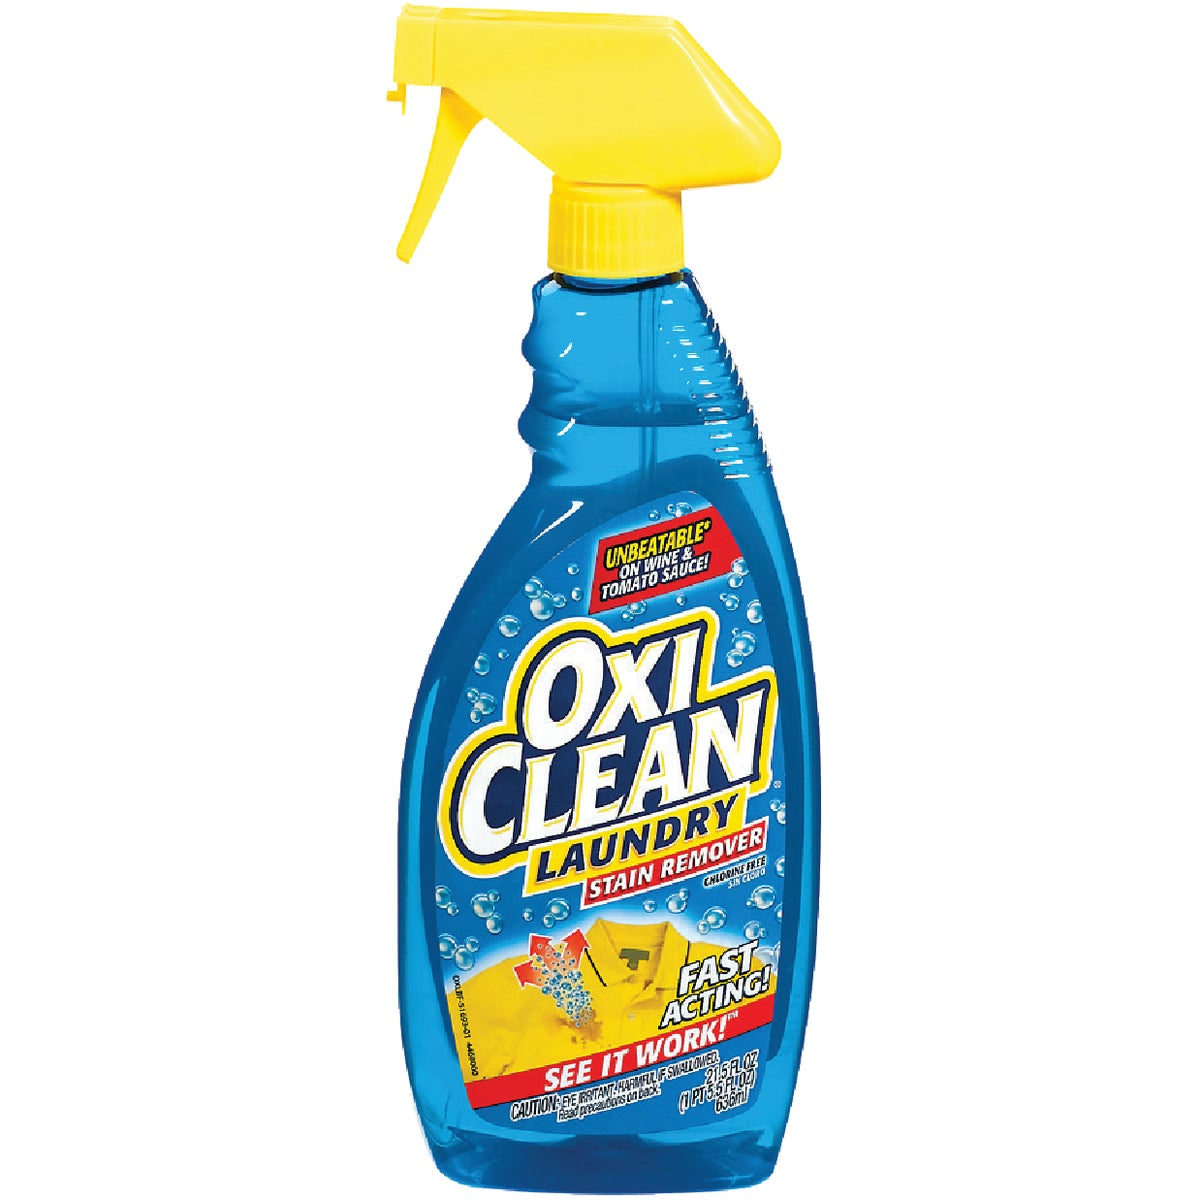 21.5OZ LIQUID OXI CLEAN - 51693 by Church & Dwight Co